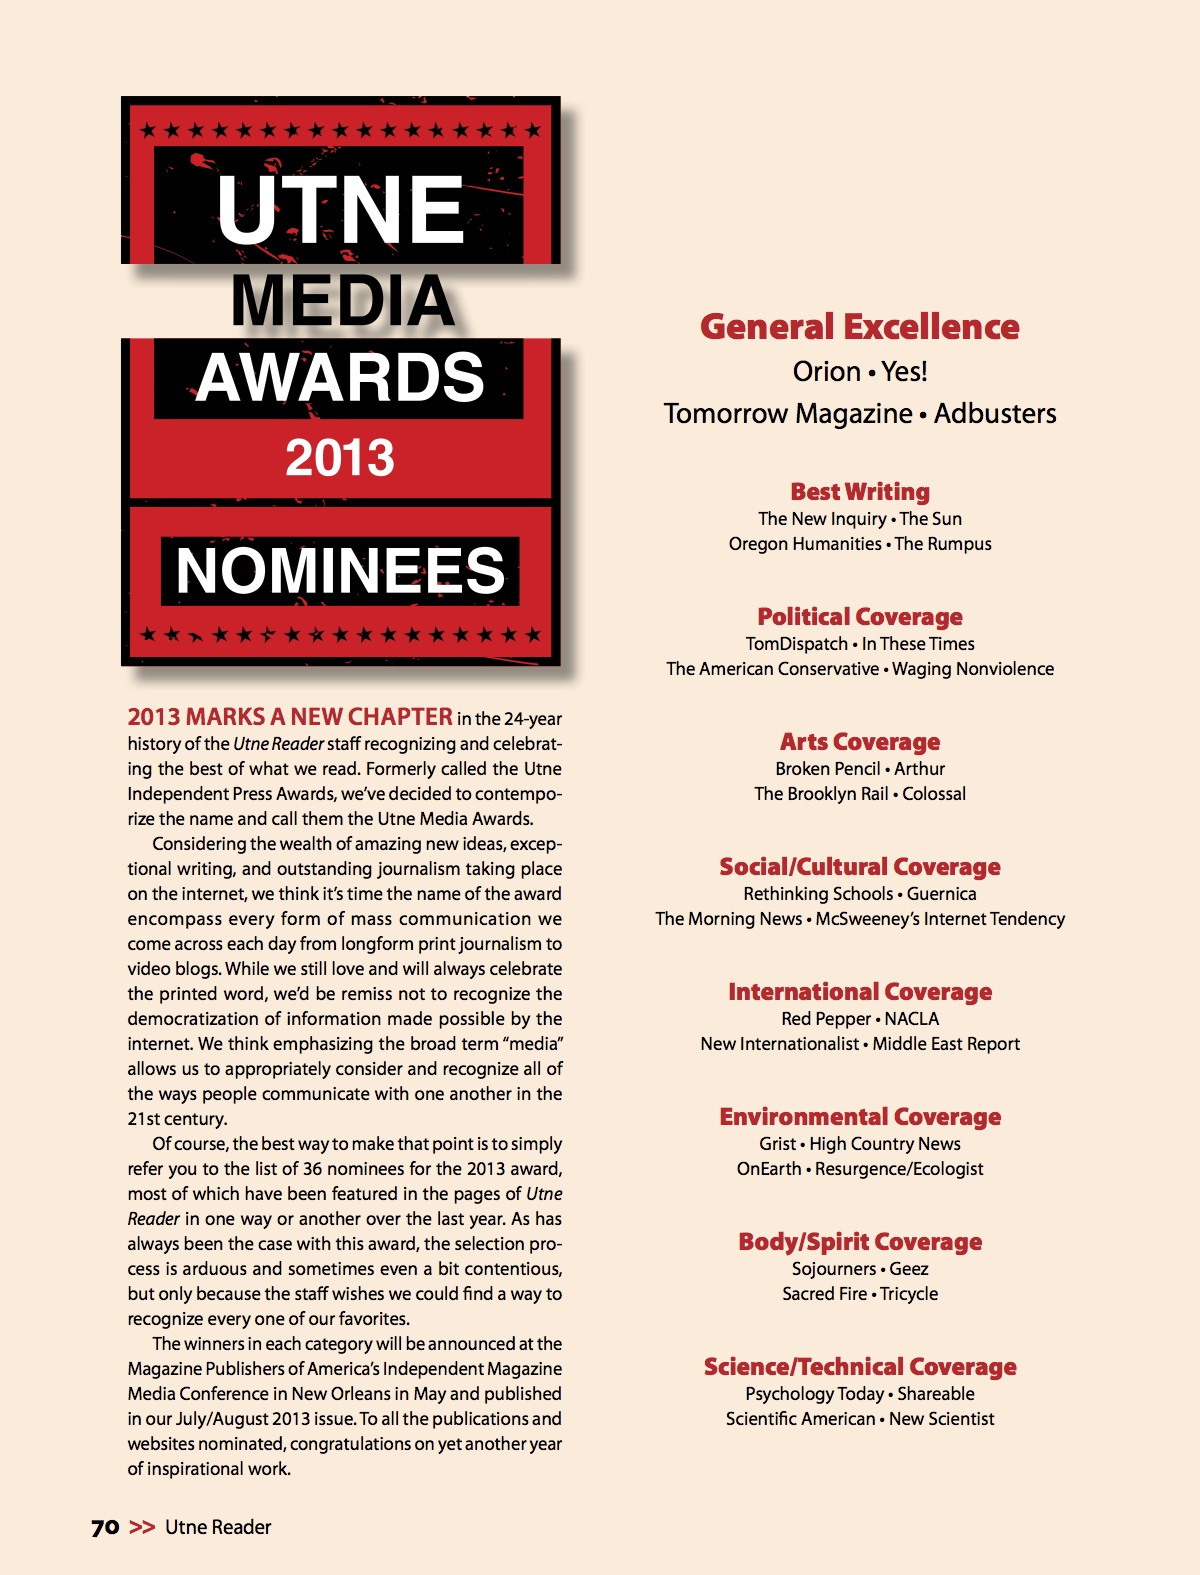 2013 Utne Media Awards nominees